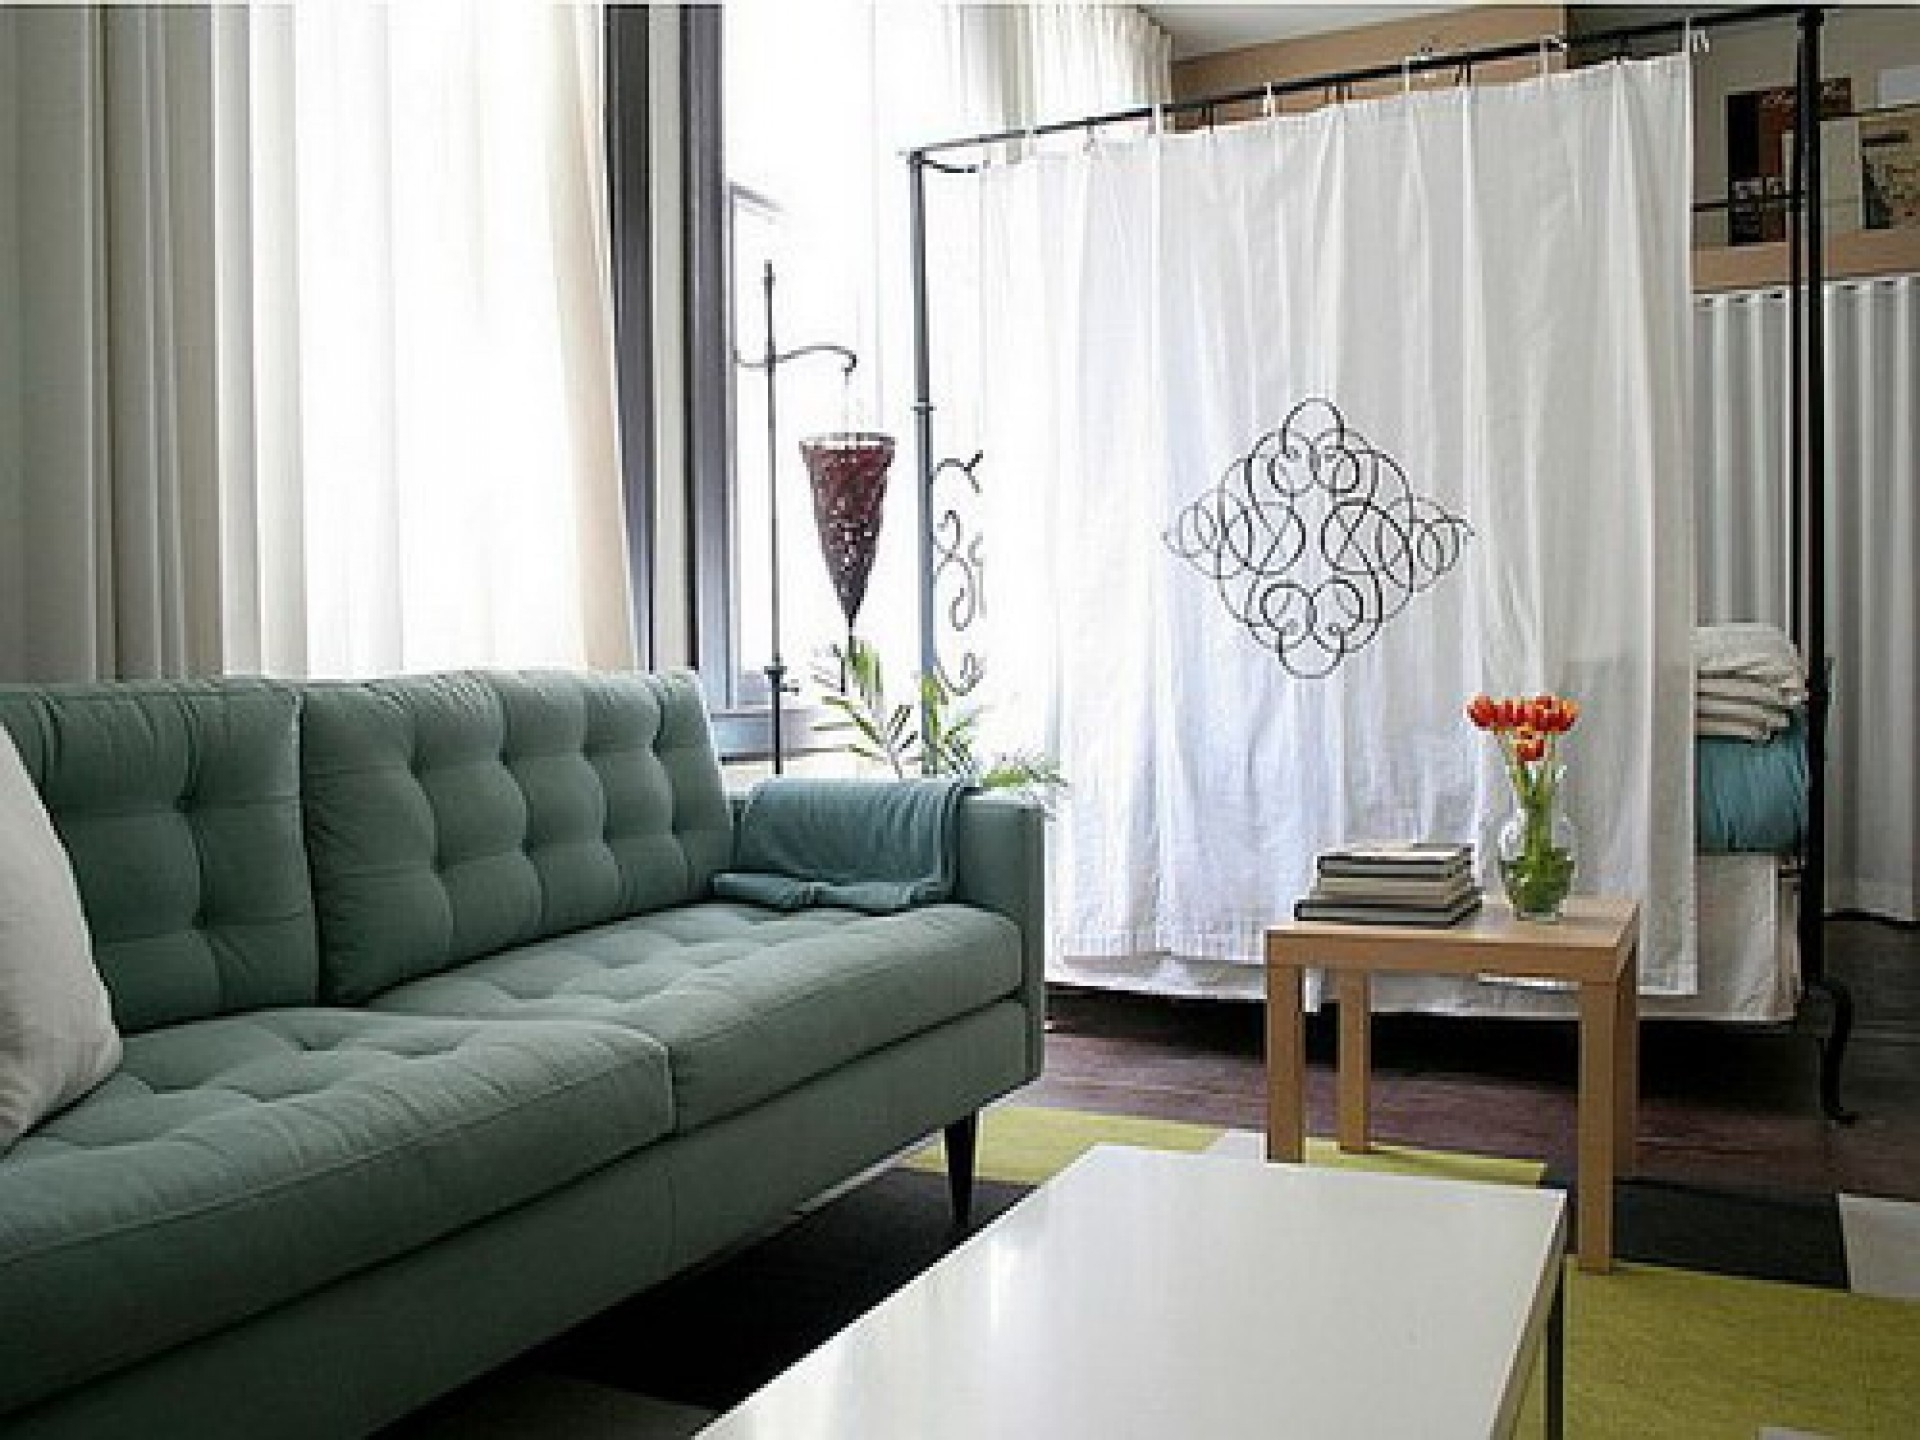 Curtain Room Dividers Office At Excellent Curtain Room Dividers For Room Curtain Divider IKEA (Image 3 of 25)